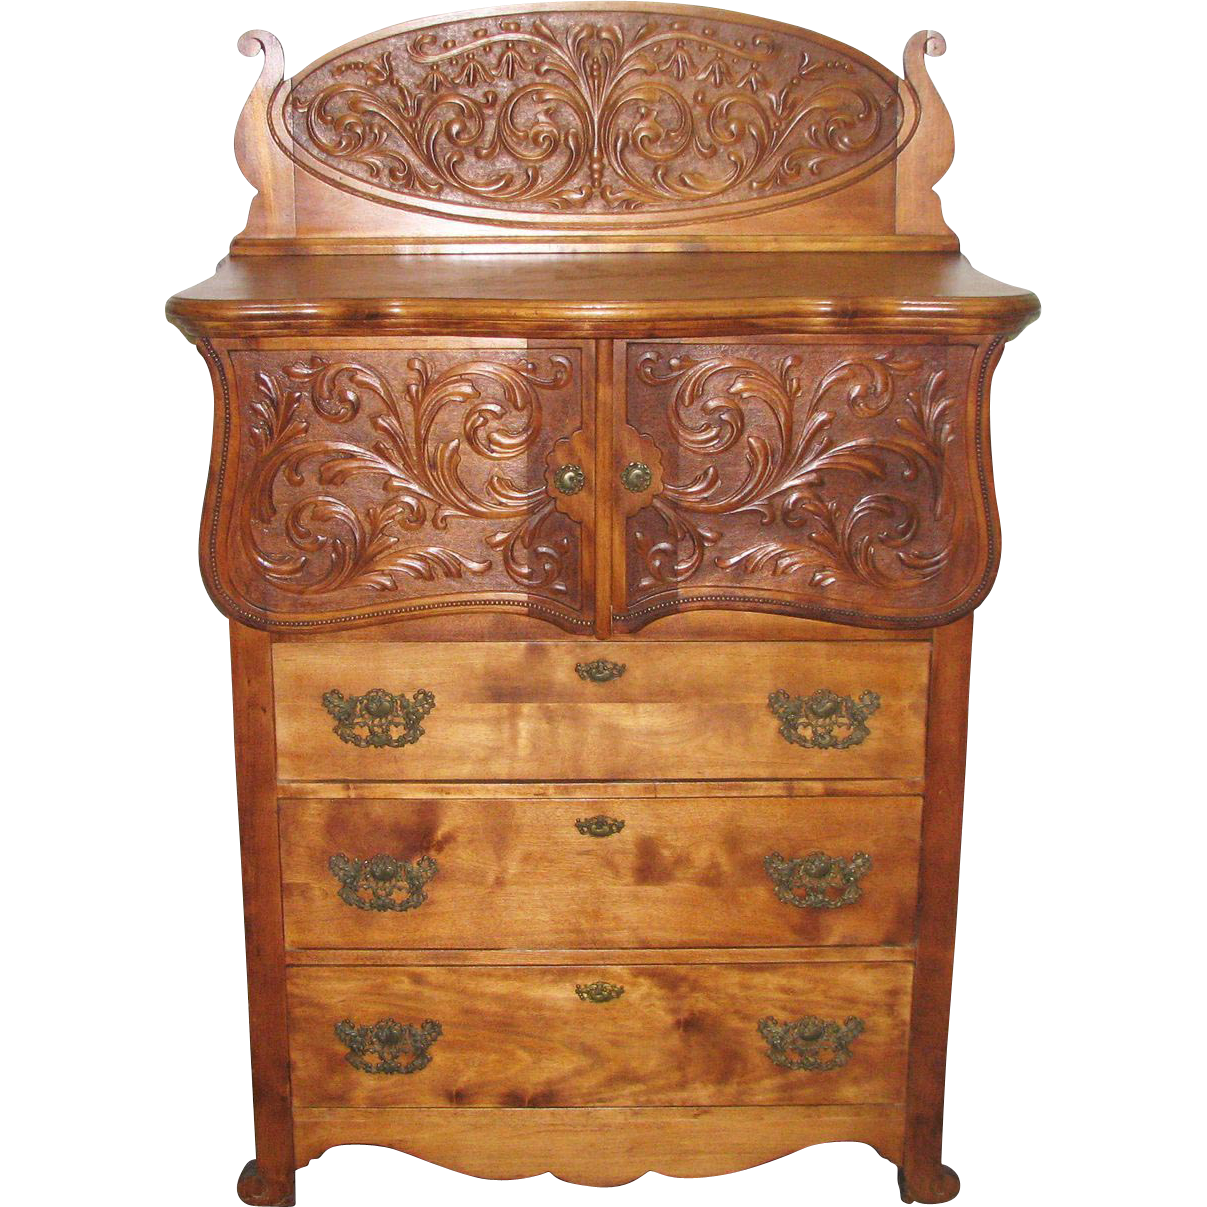 Intricately carved flamed maple dresser